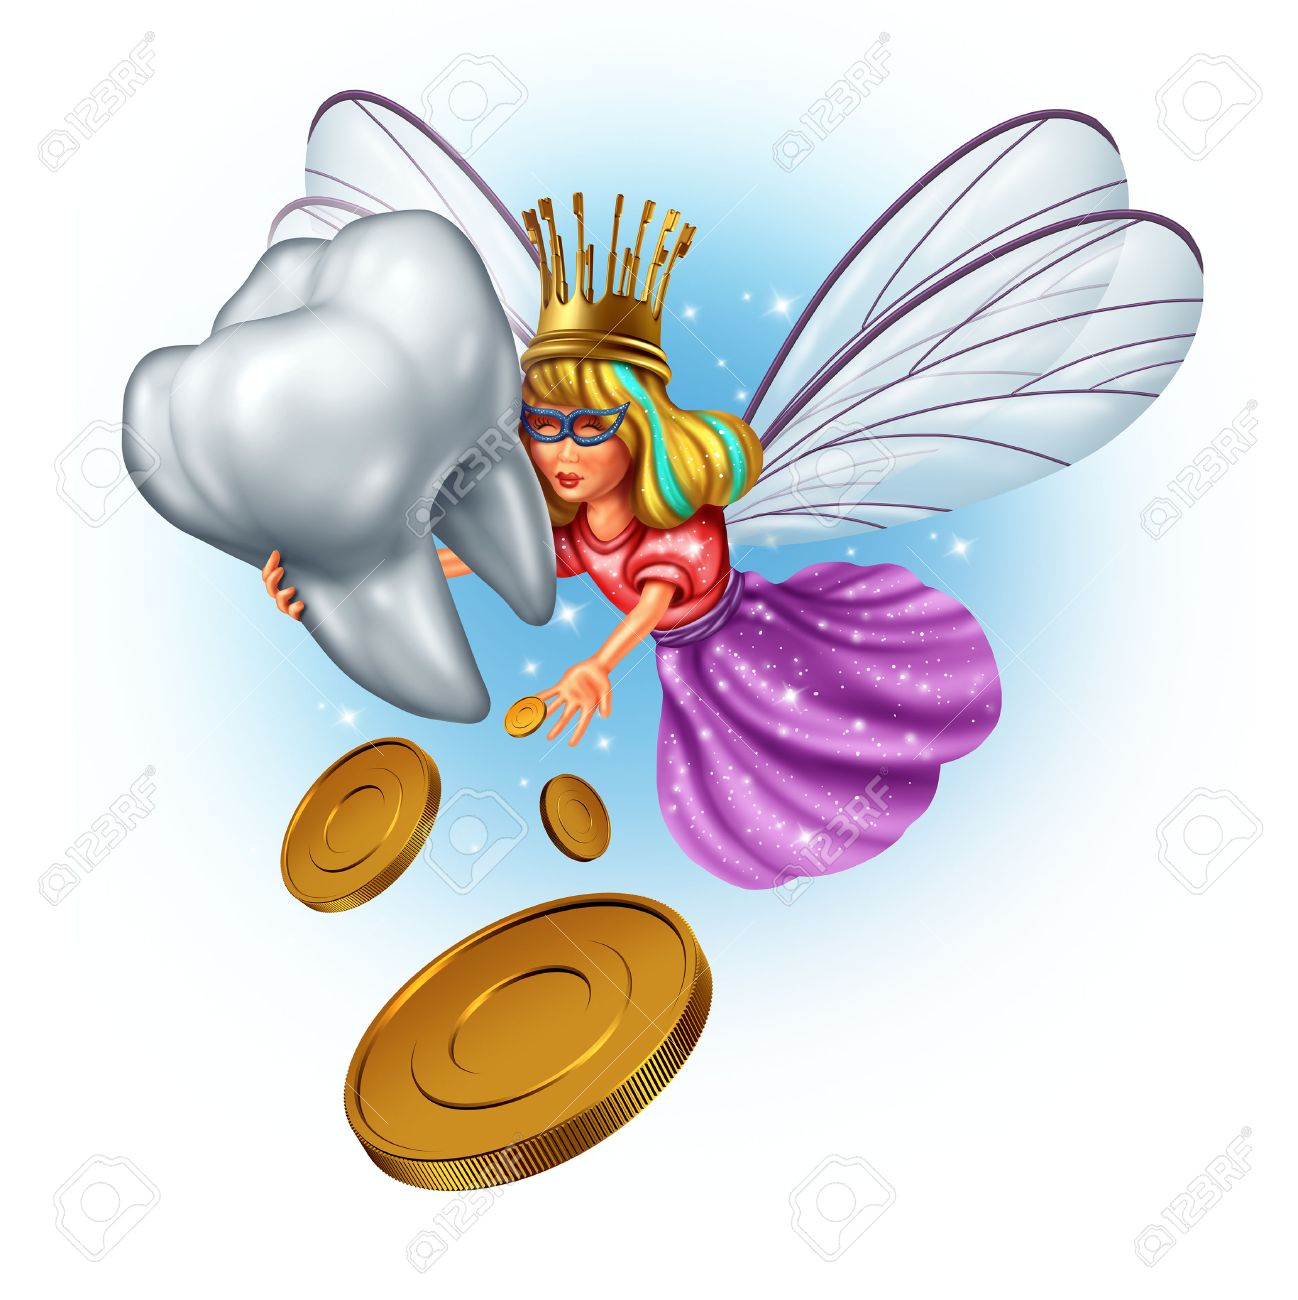 Tooth Fairy Character As A Mythical And Magical Princess Wearing ...